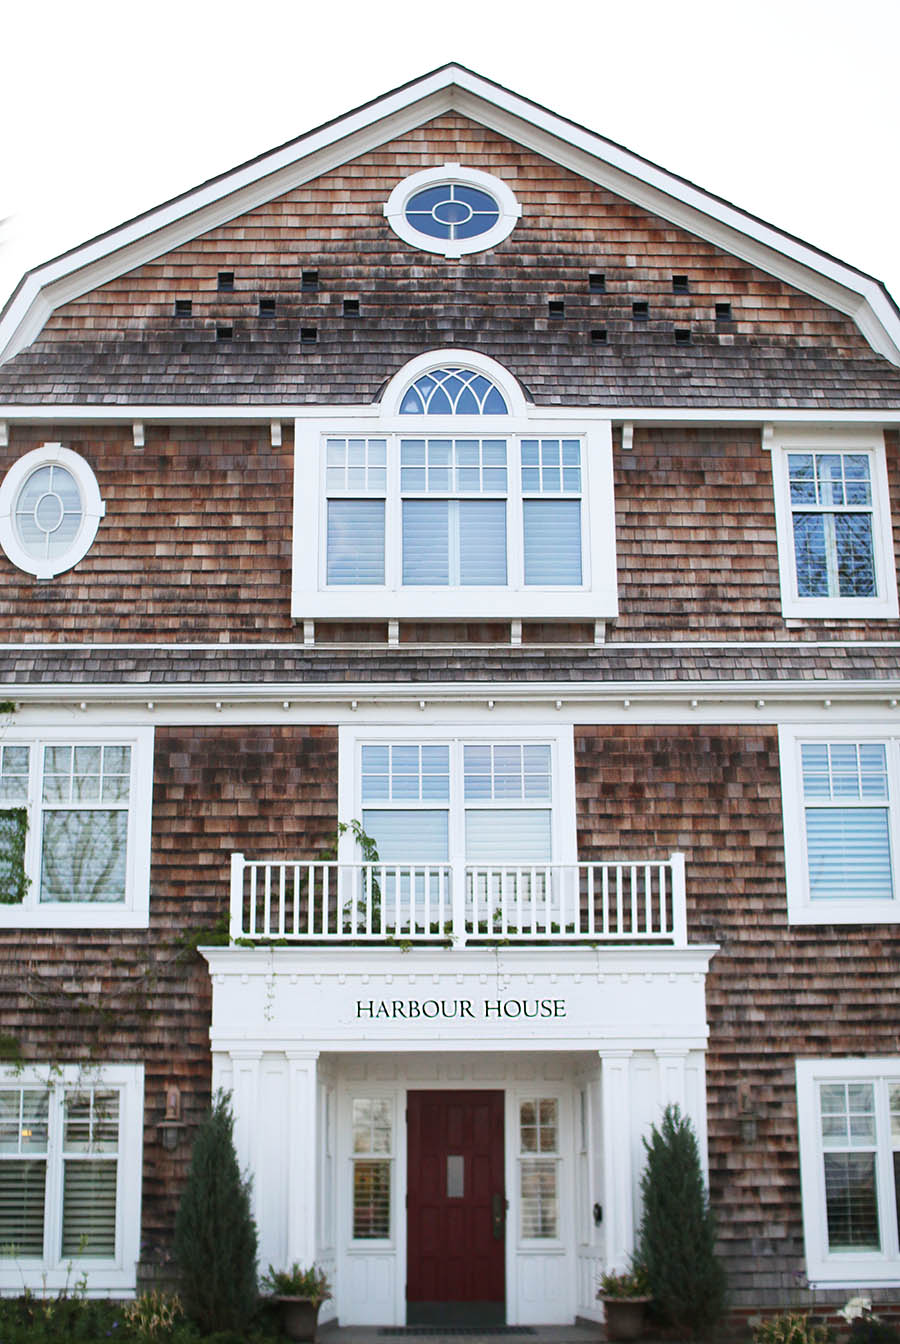 Harbour-House-Niagara-On-The-Lake-Vintage-Hotels-1